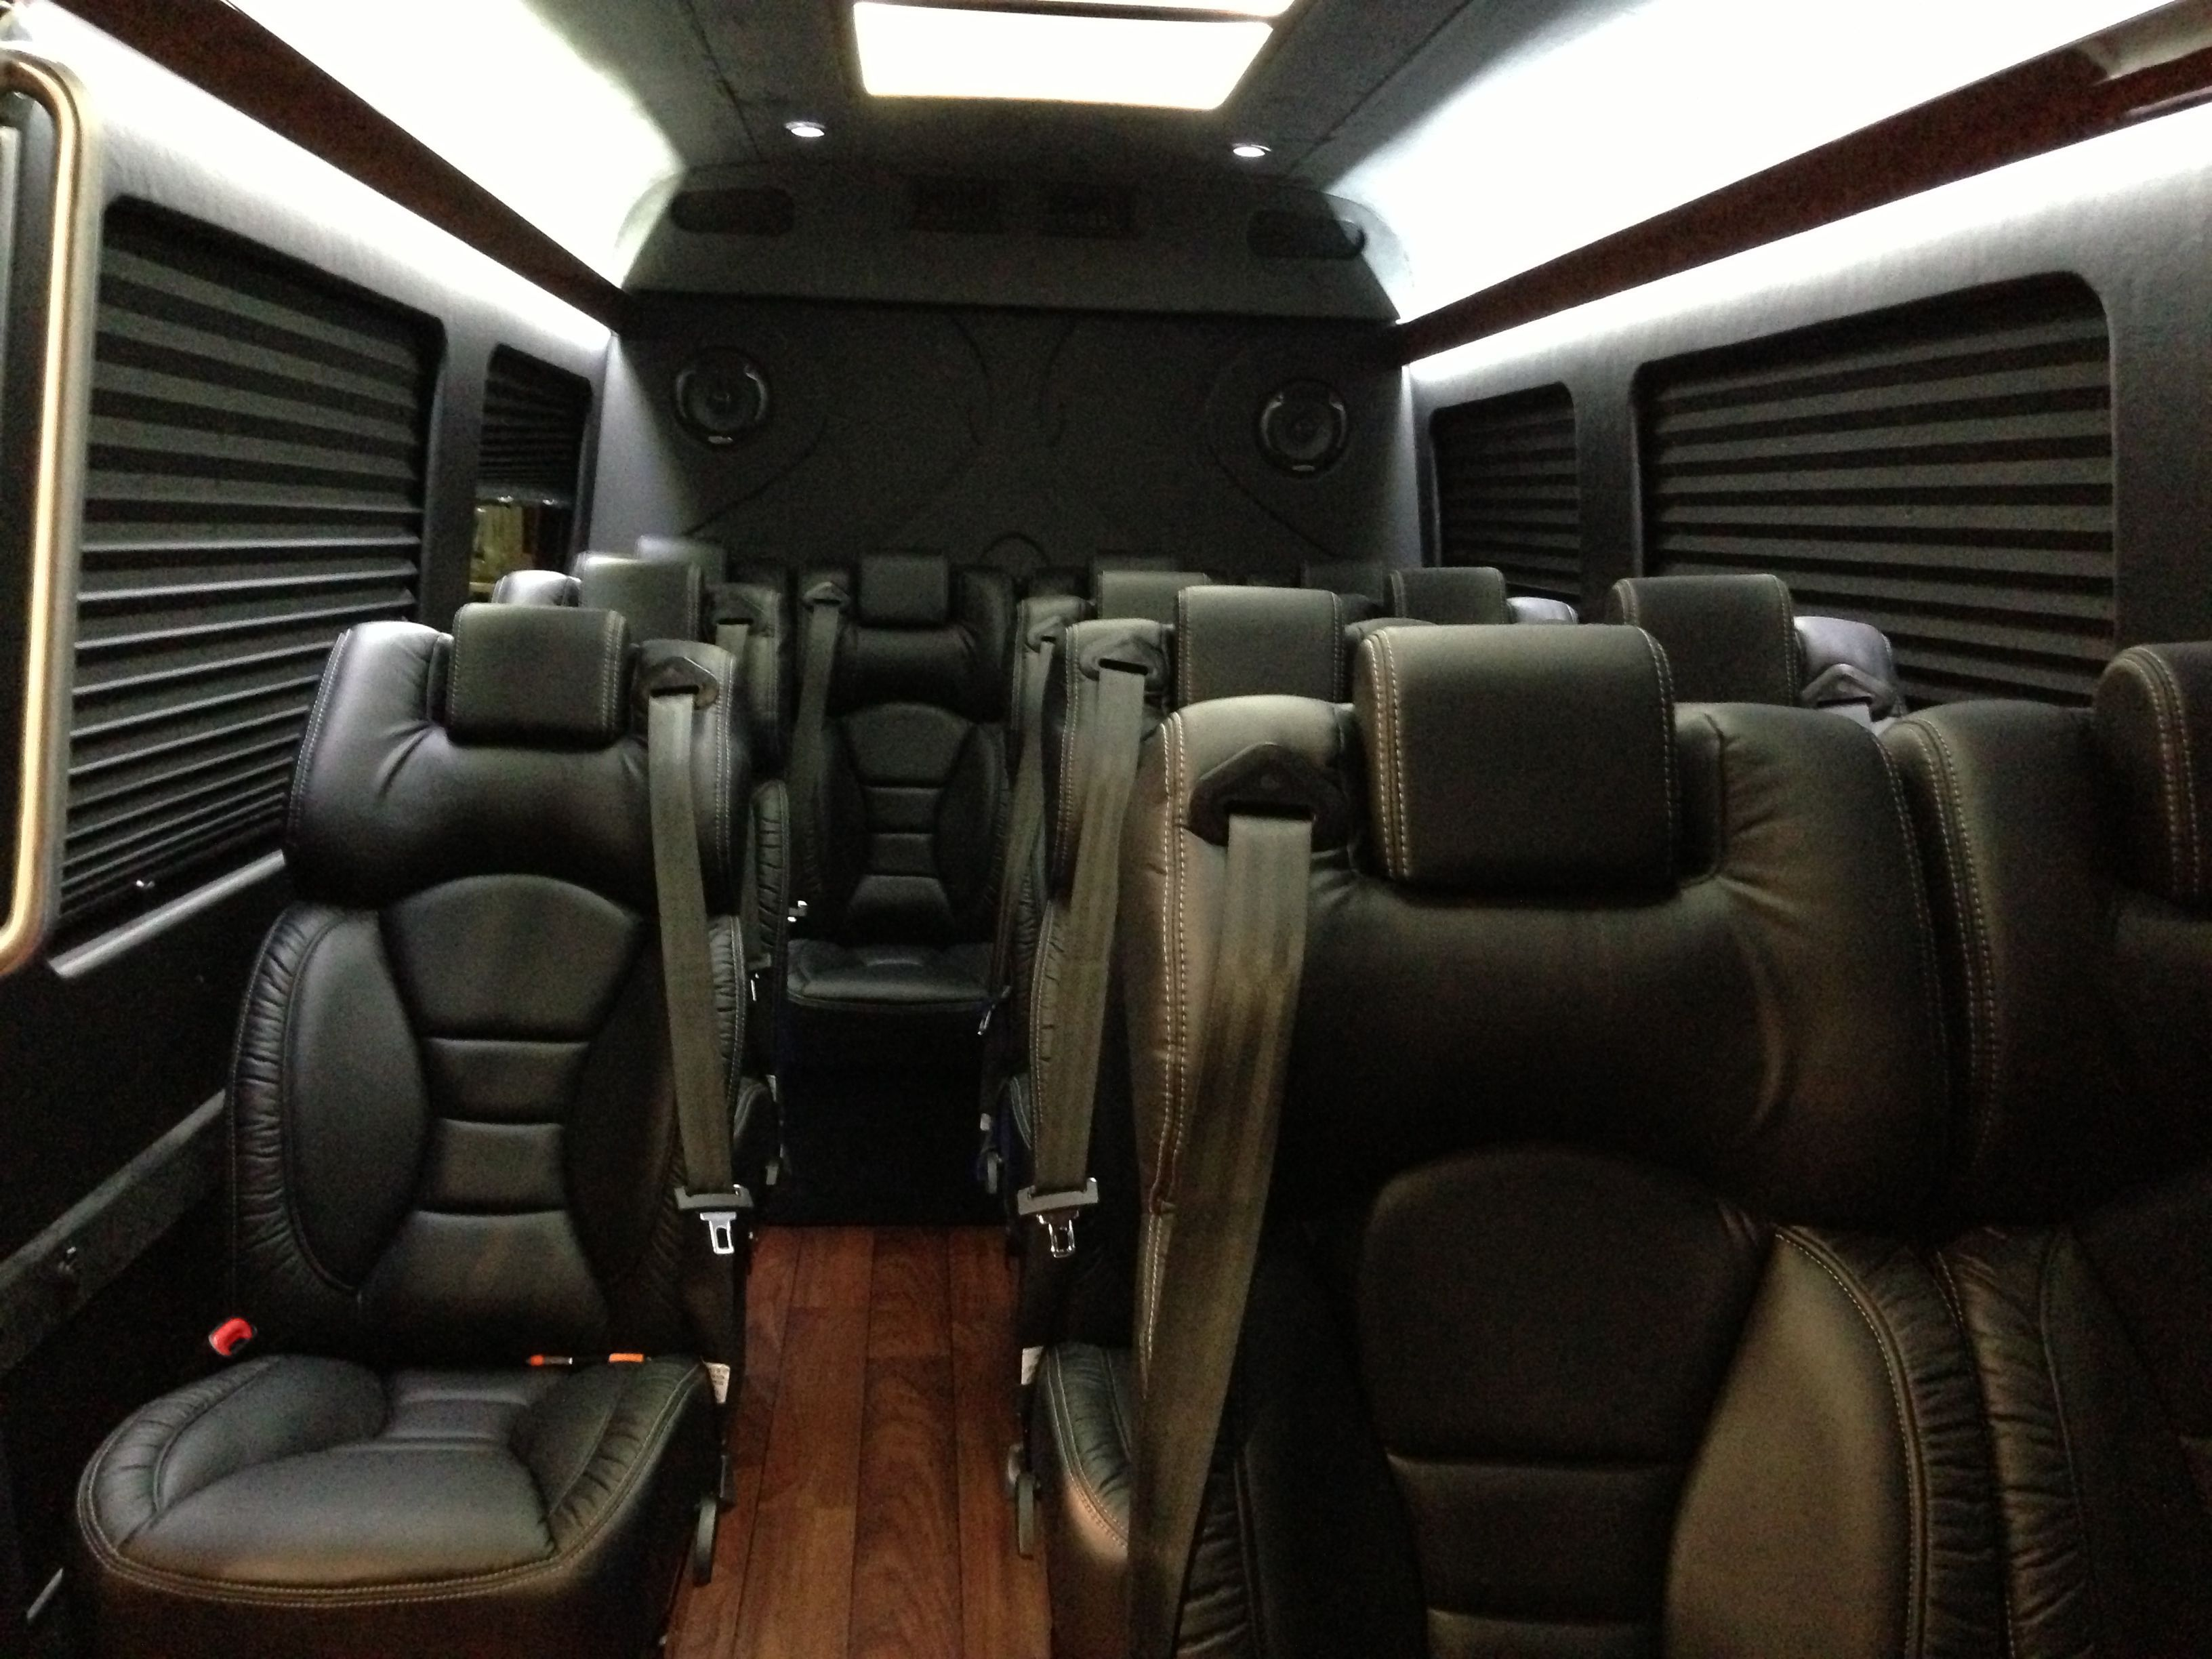 Mercedes Sprinter Mini Bus Interior